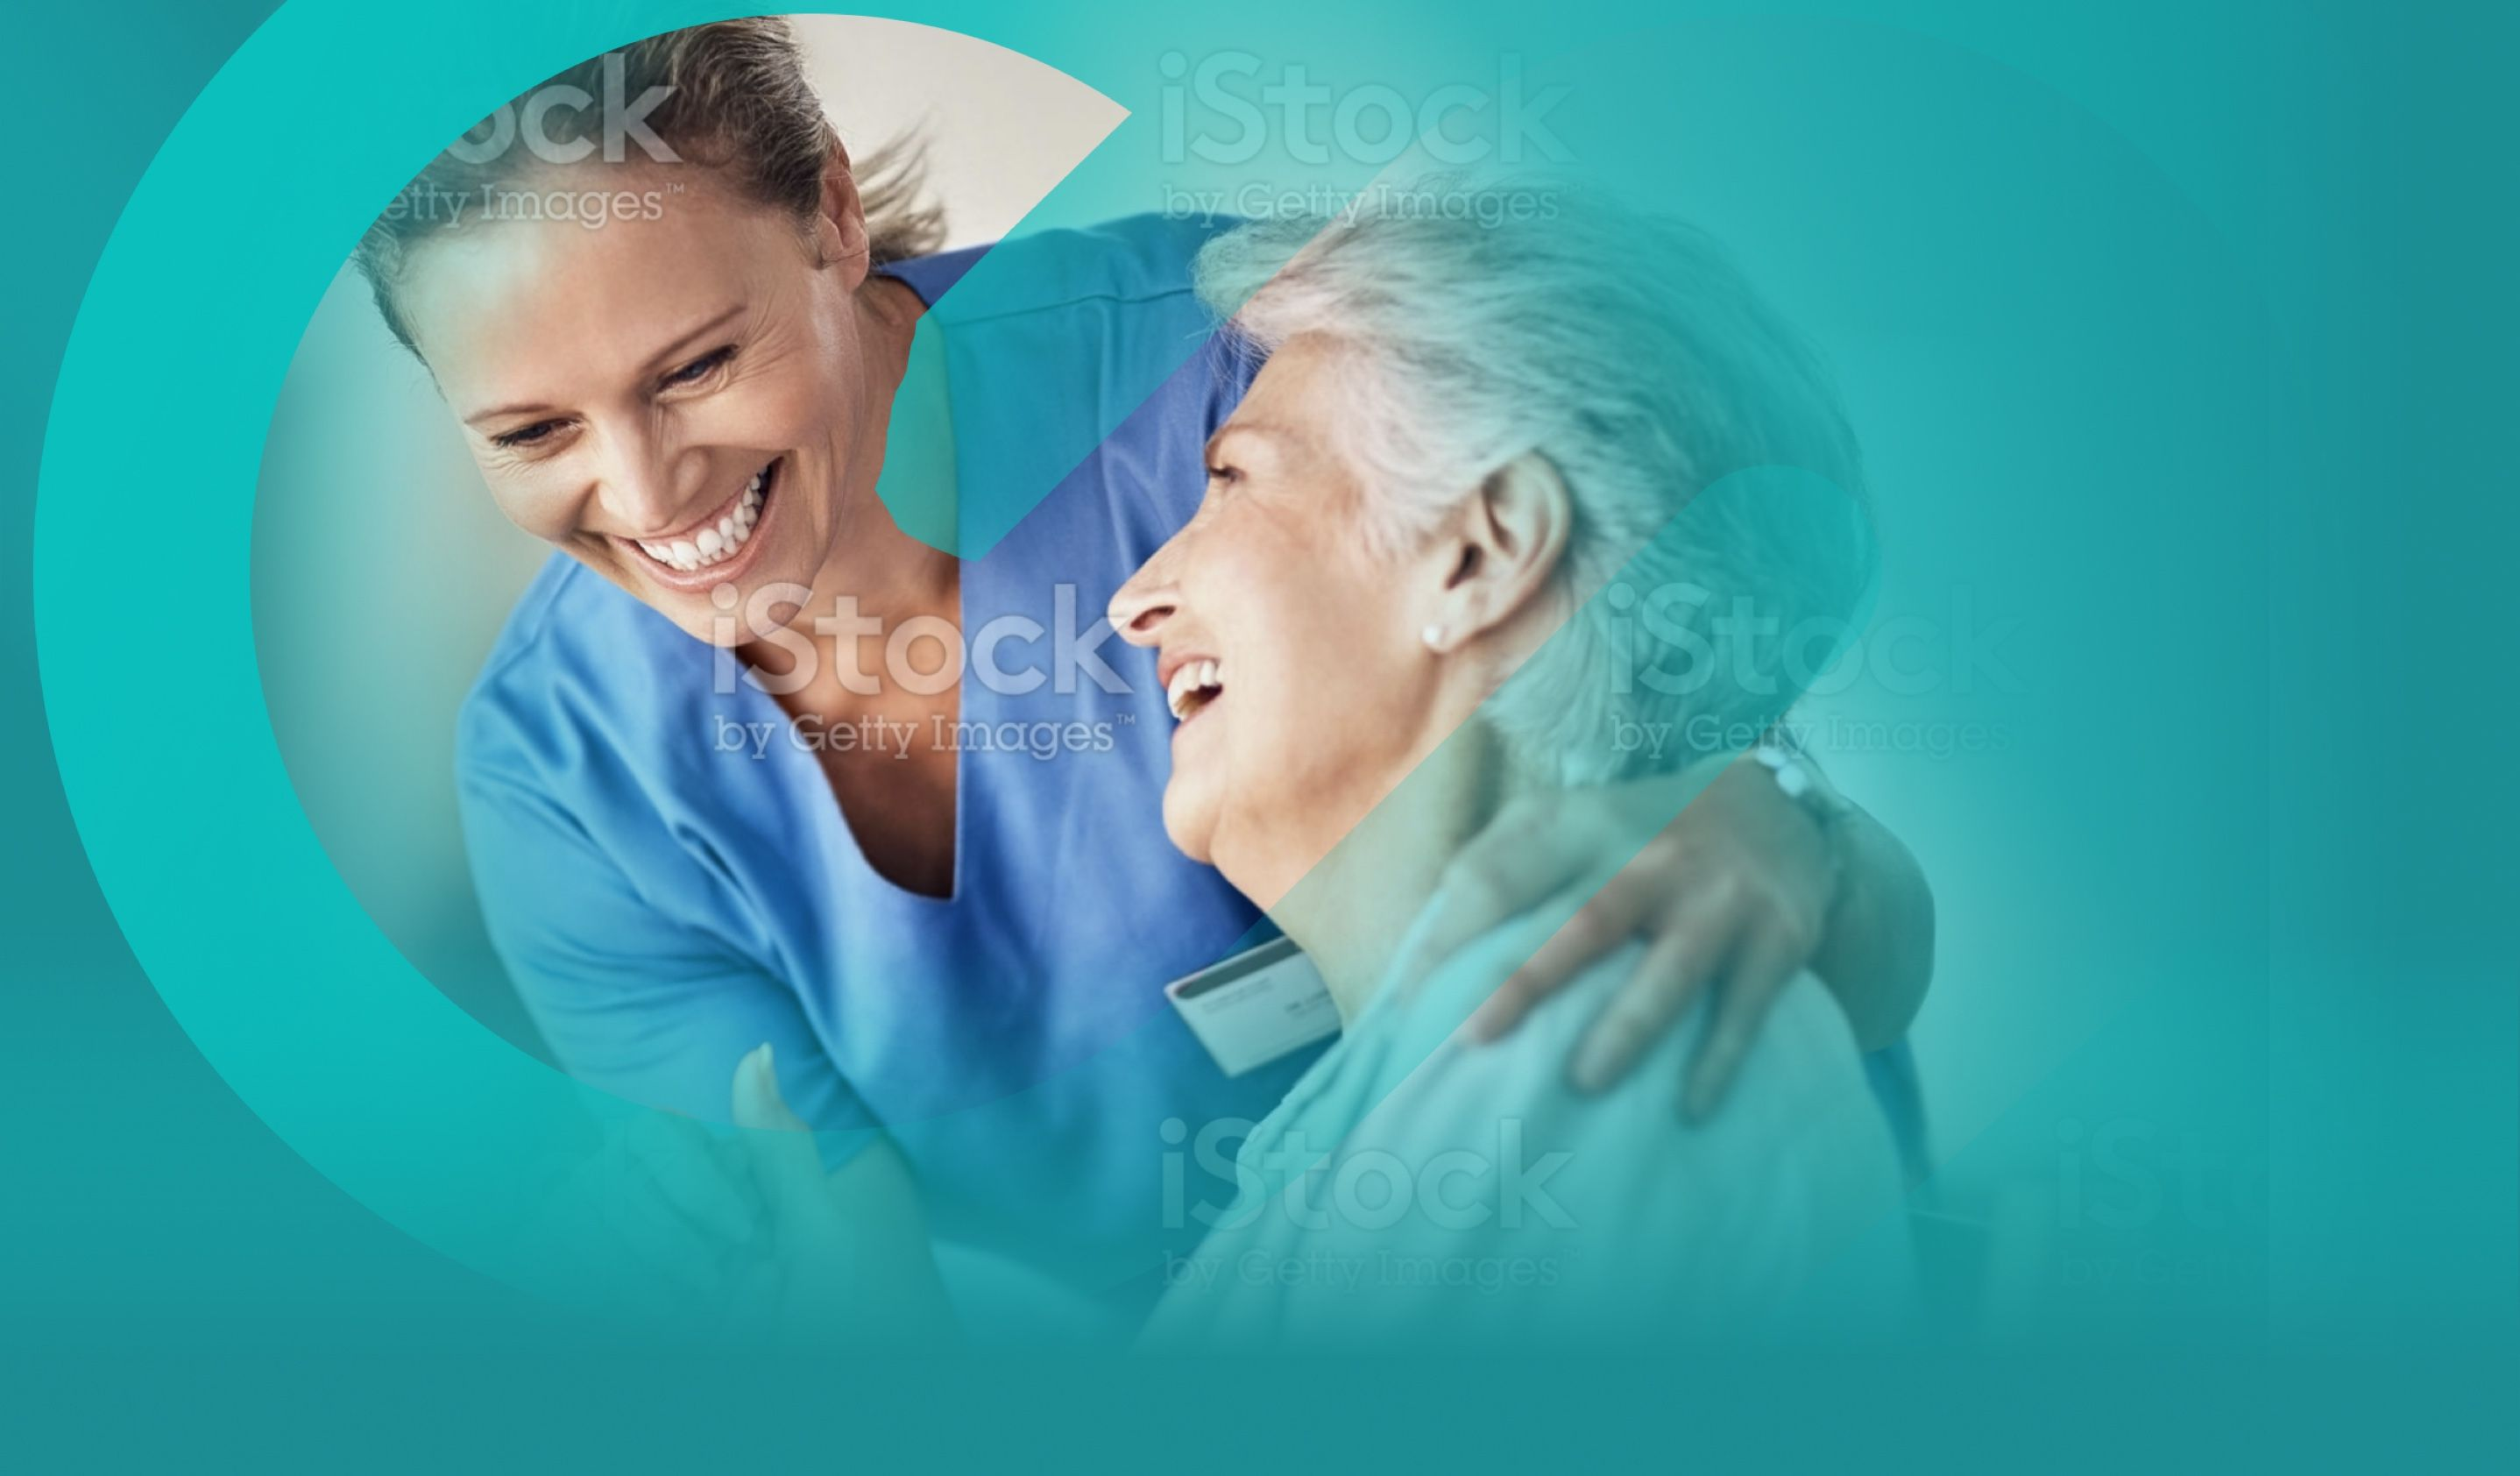 Find a Home Care Provider that's suited to your individual needs